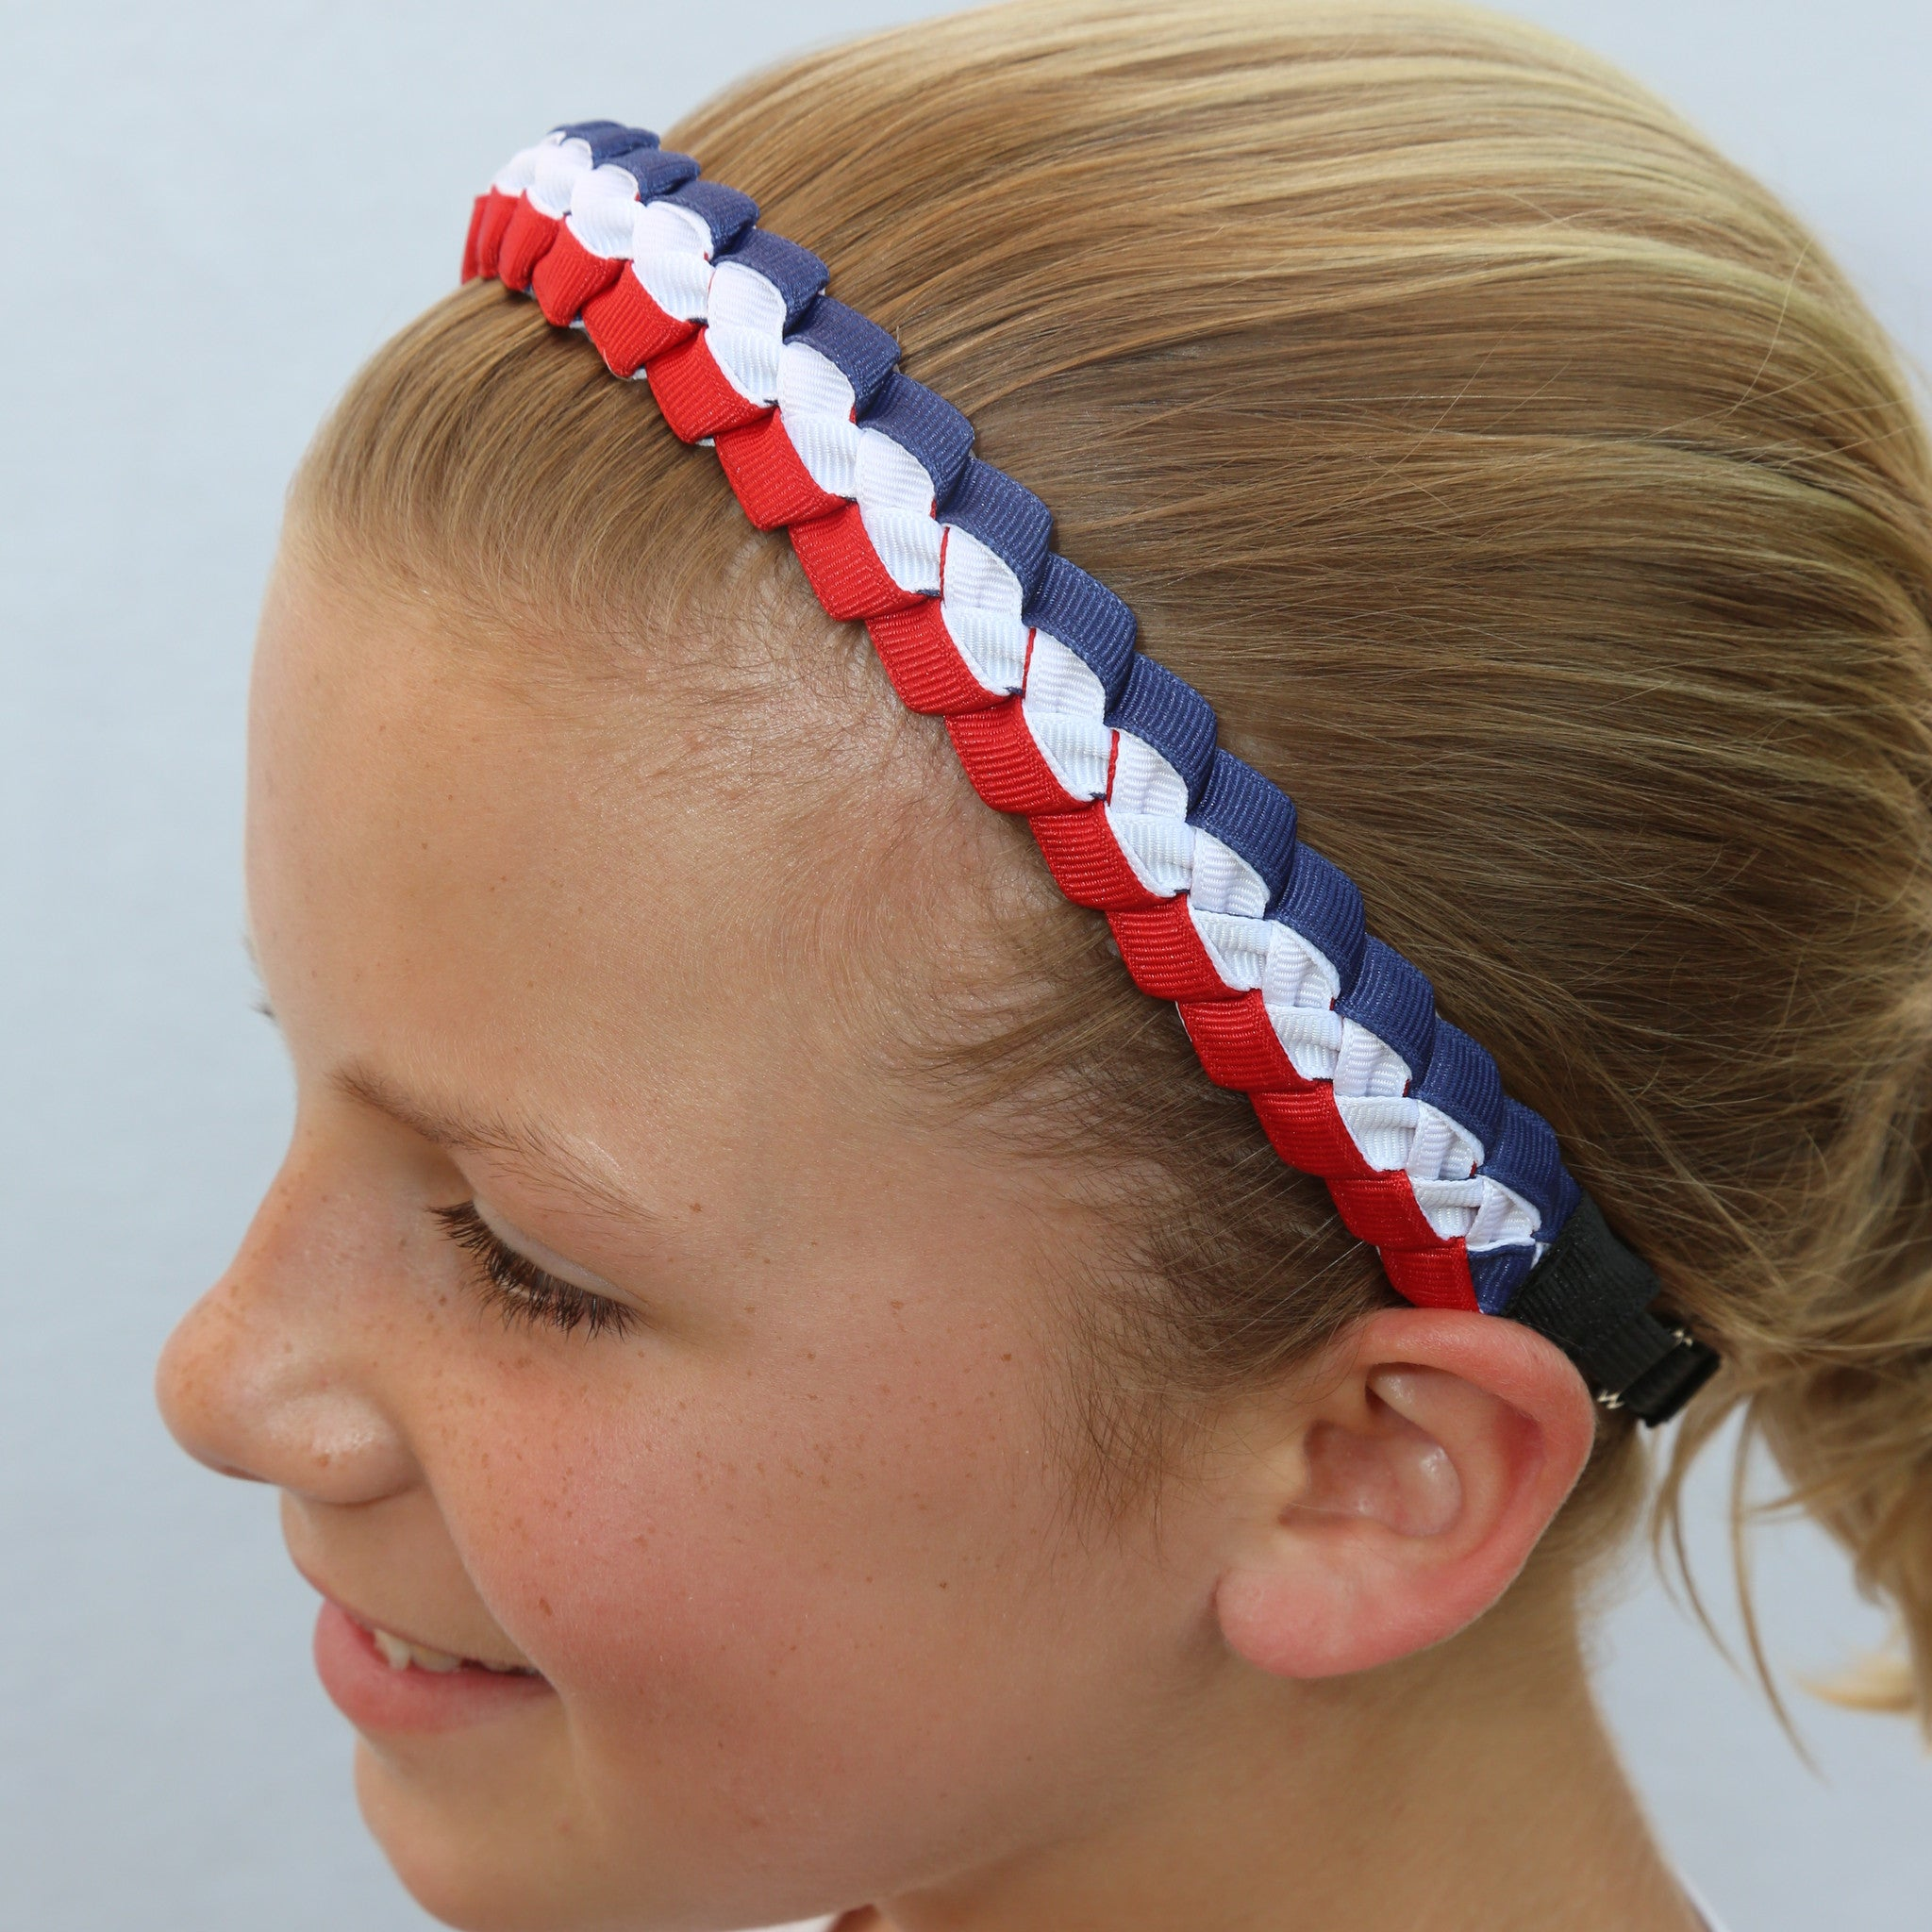 Sillies Headband VBII - Countries